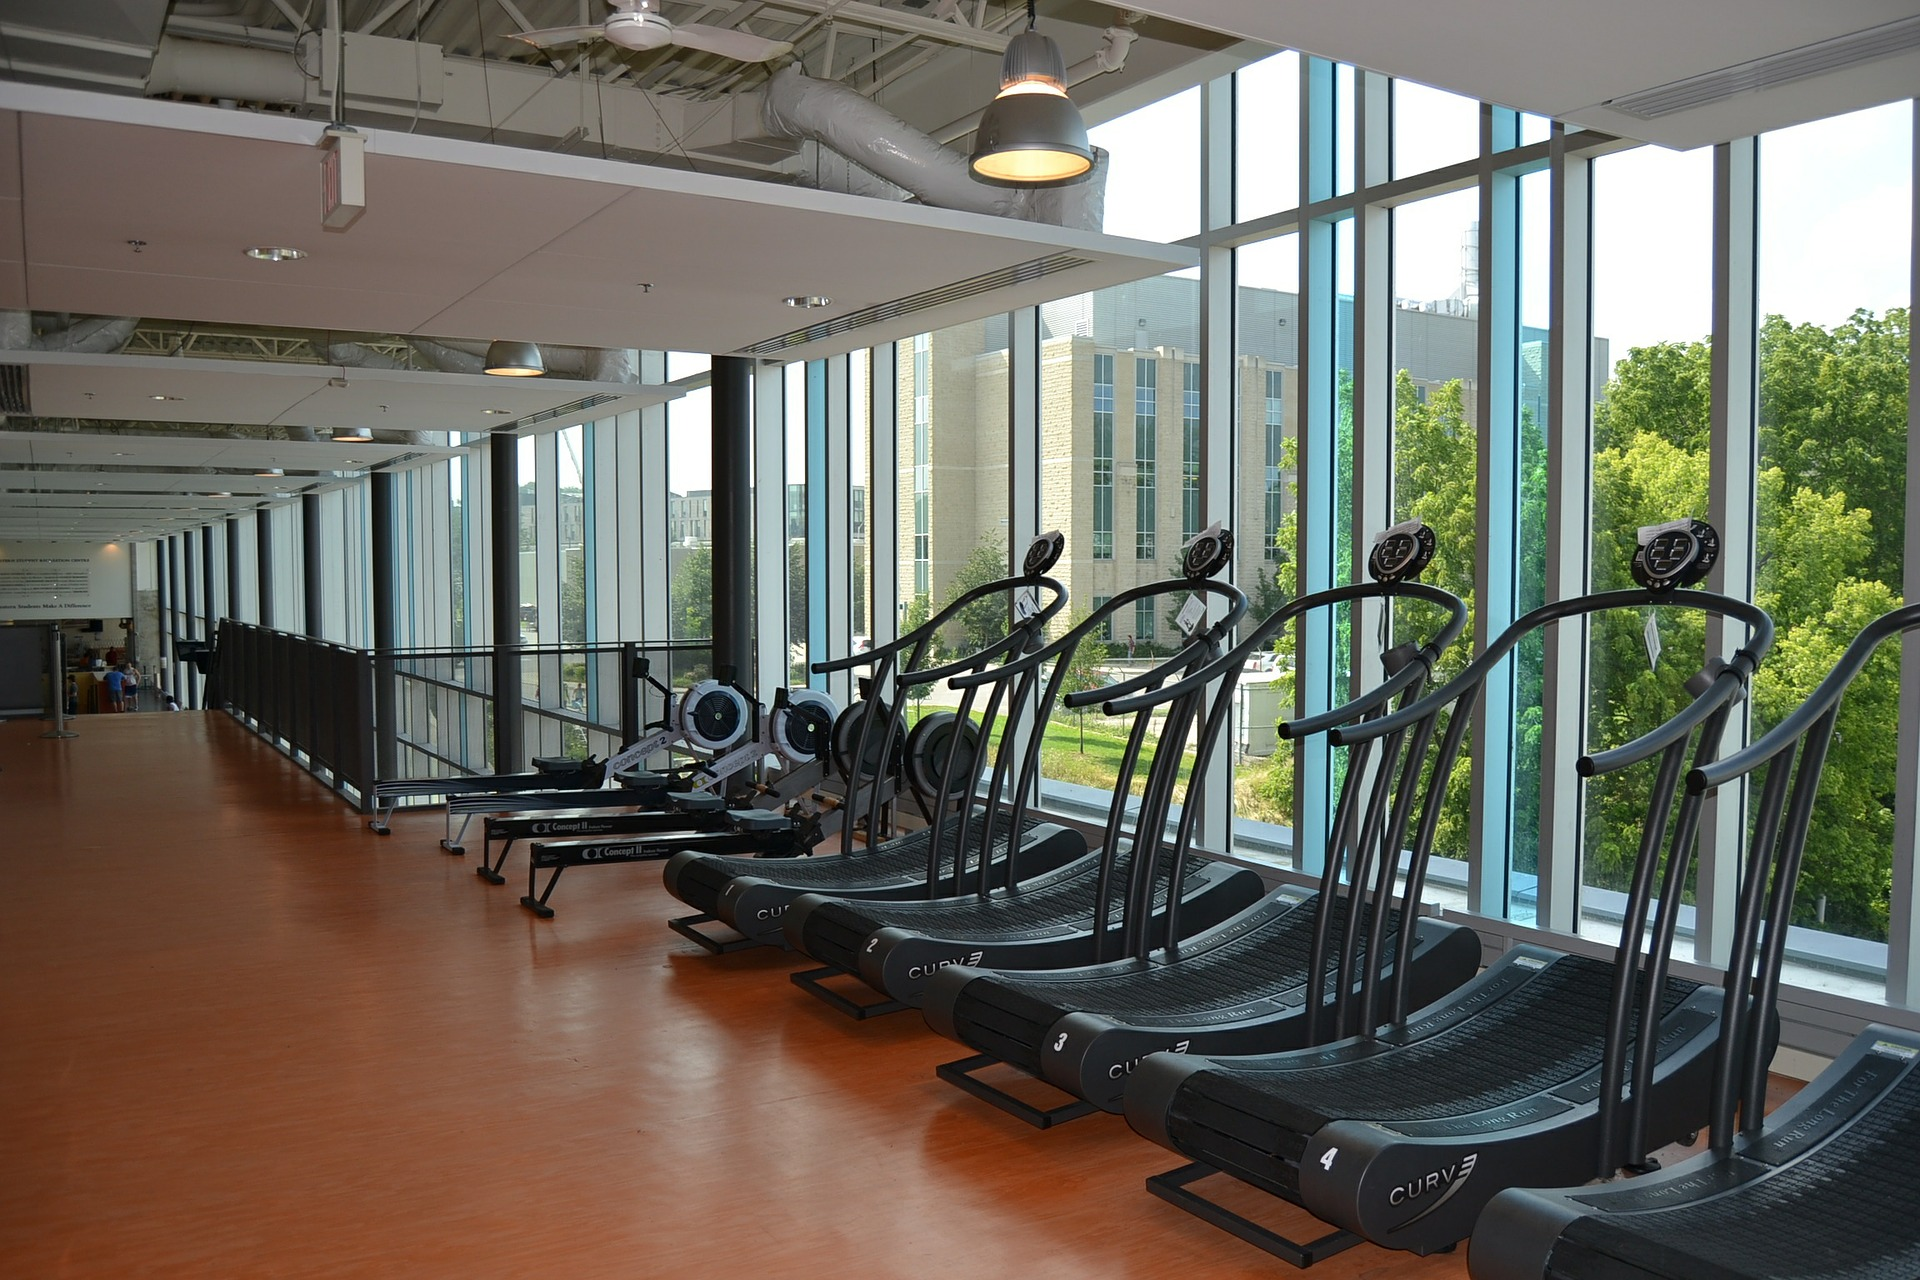 Fitness center with treadmills against a window - TAB Bank